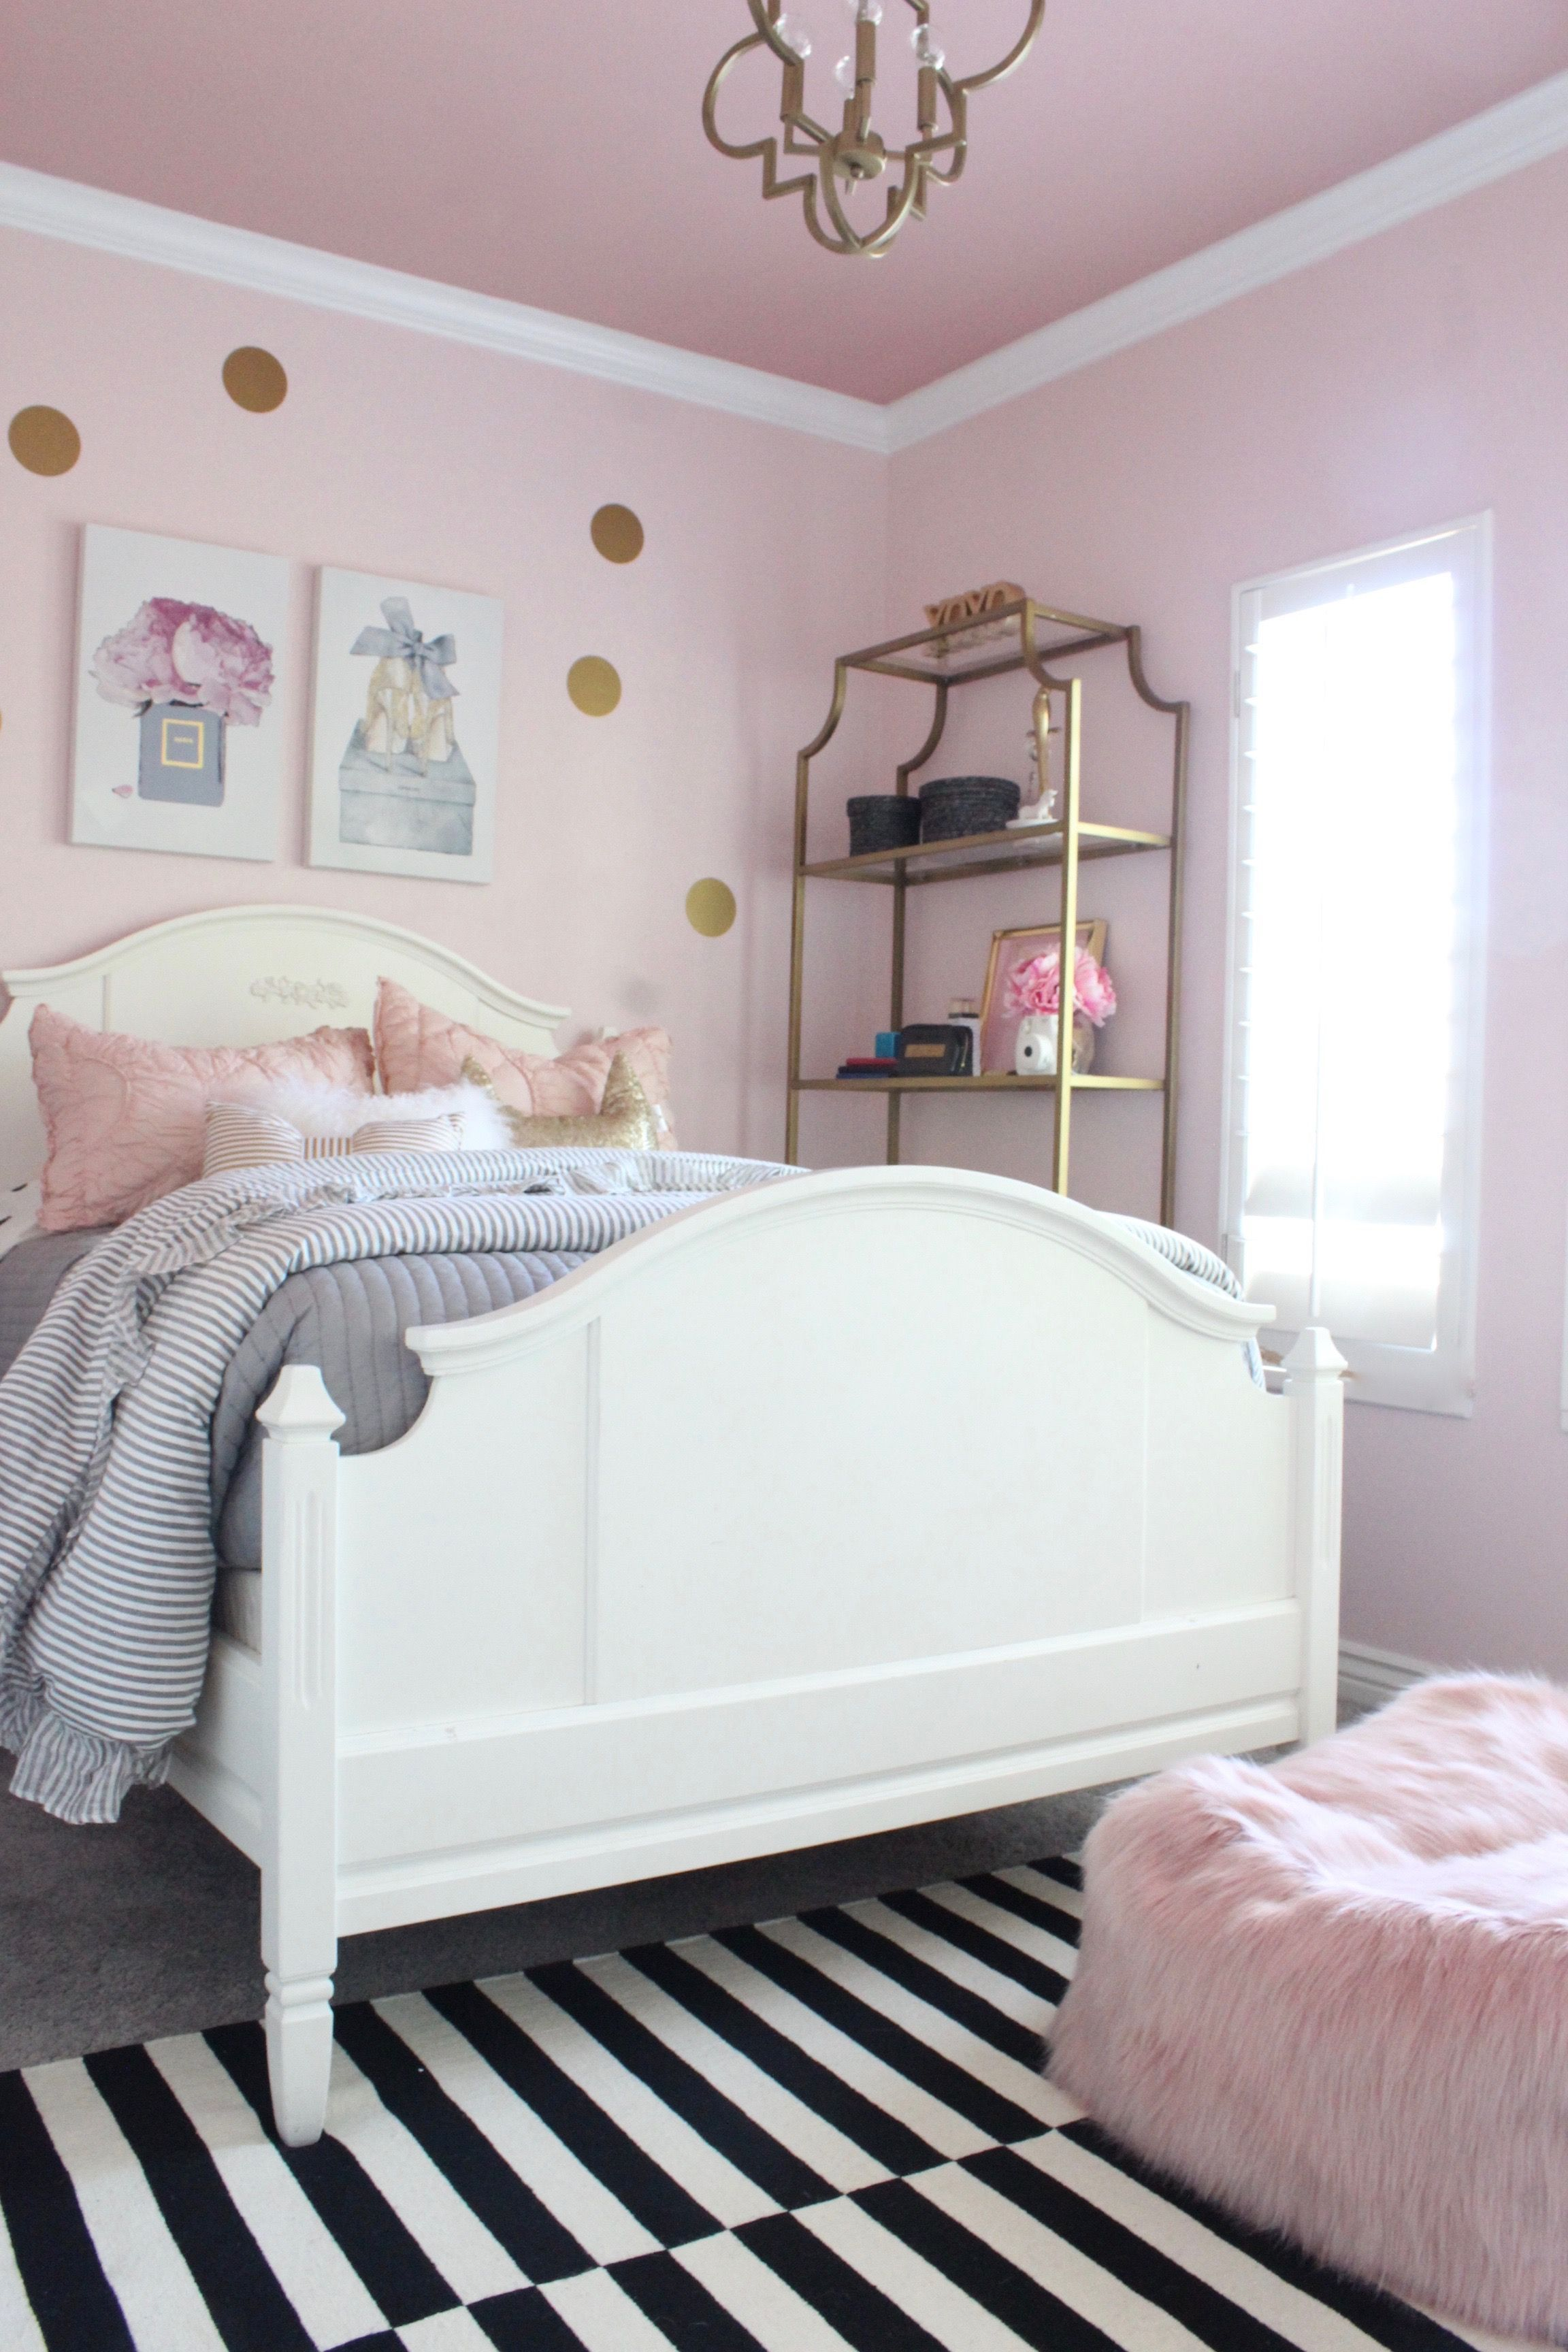 52 Charming Fun Tween Bedroom Ideas For Girl Roundecor Pink Decor Room